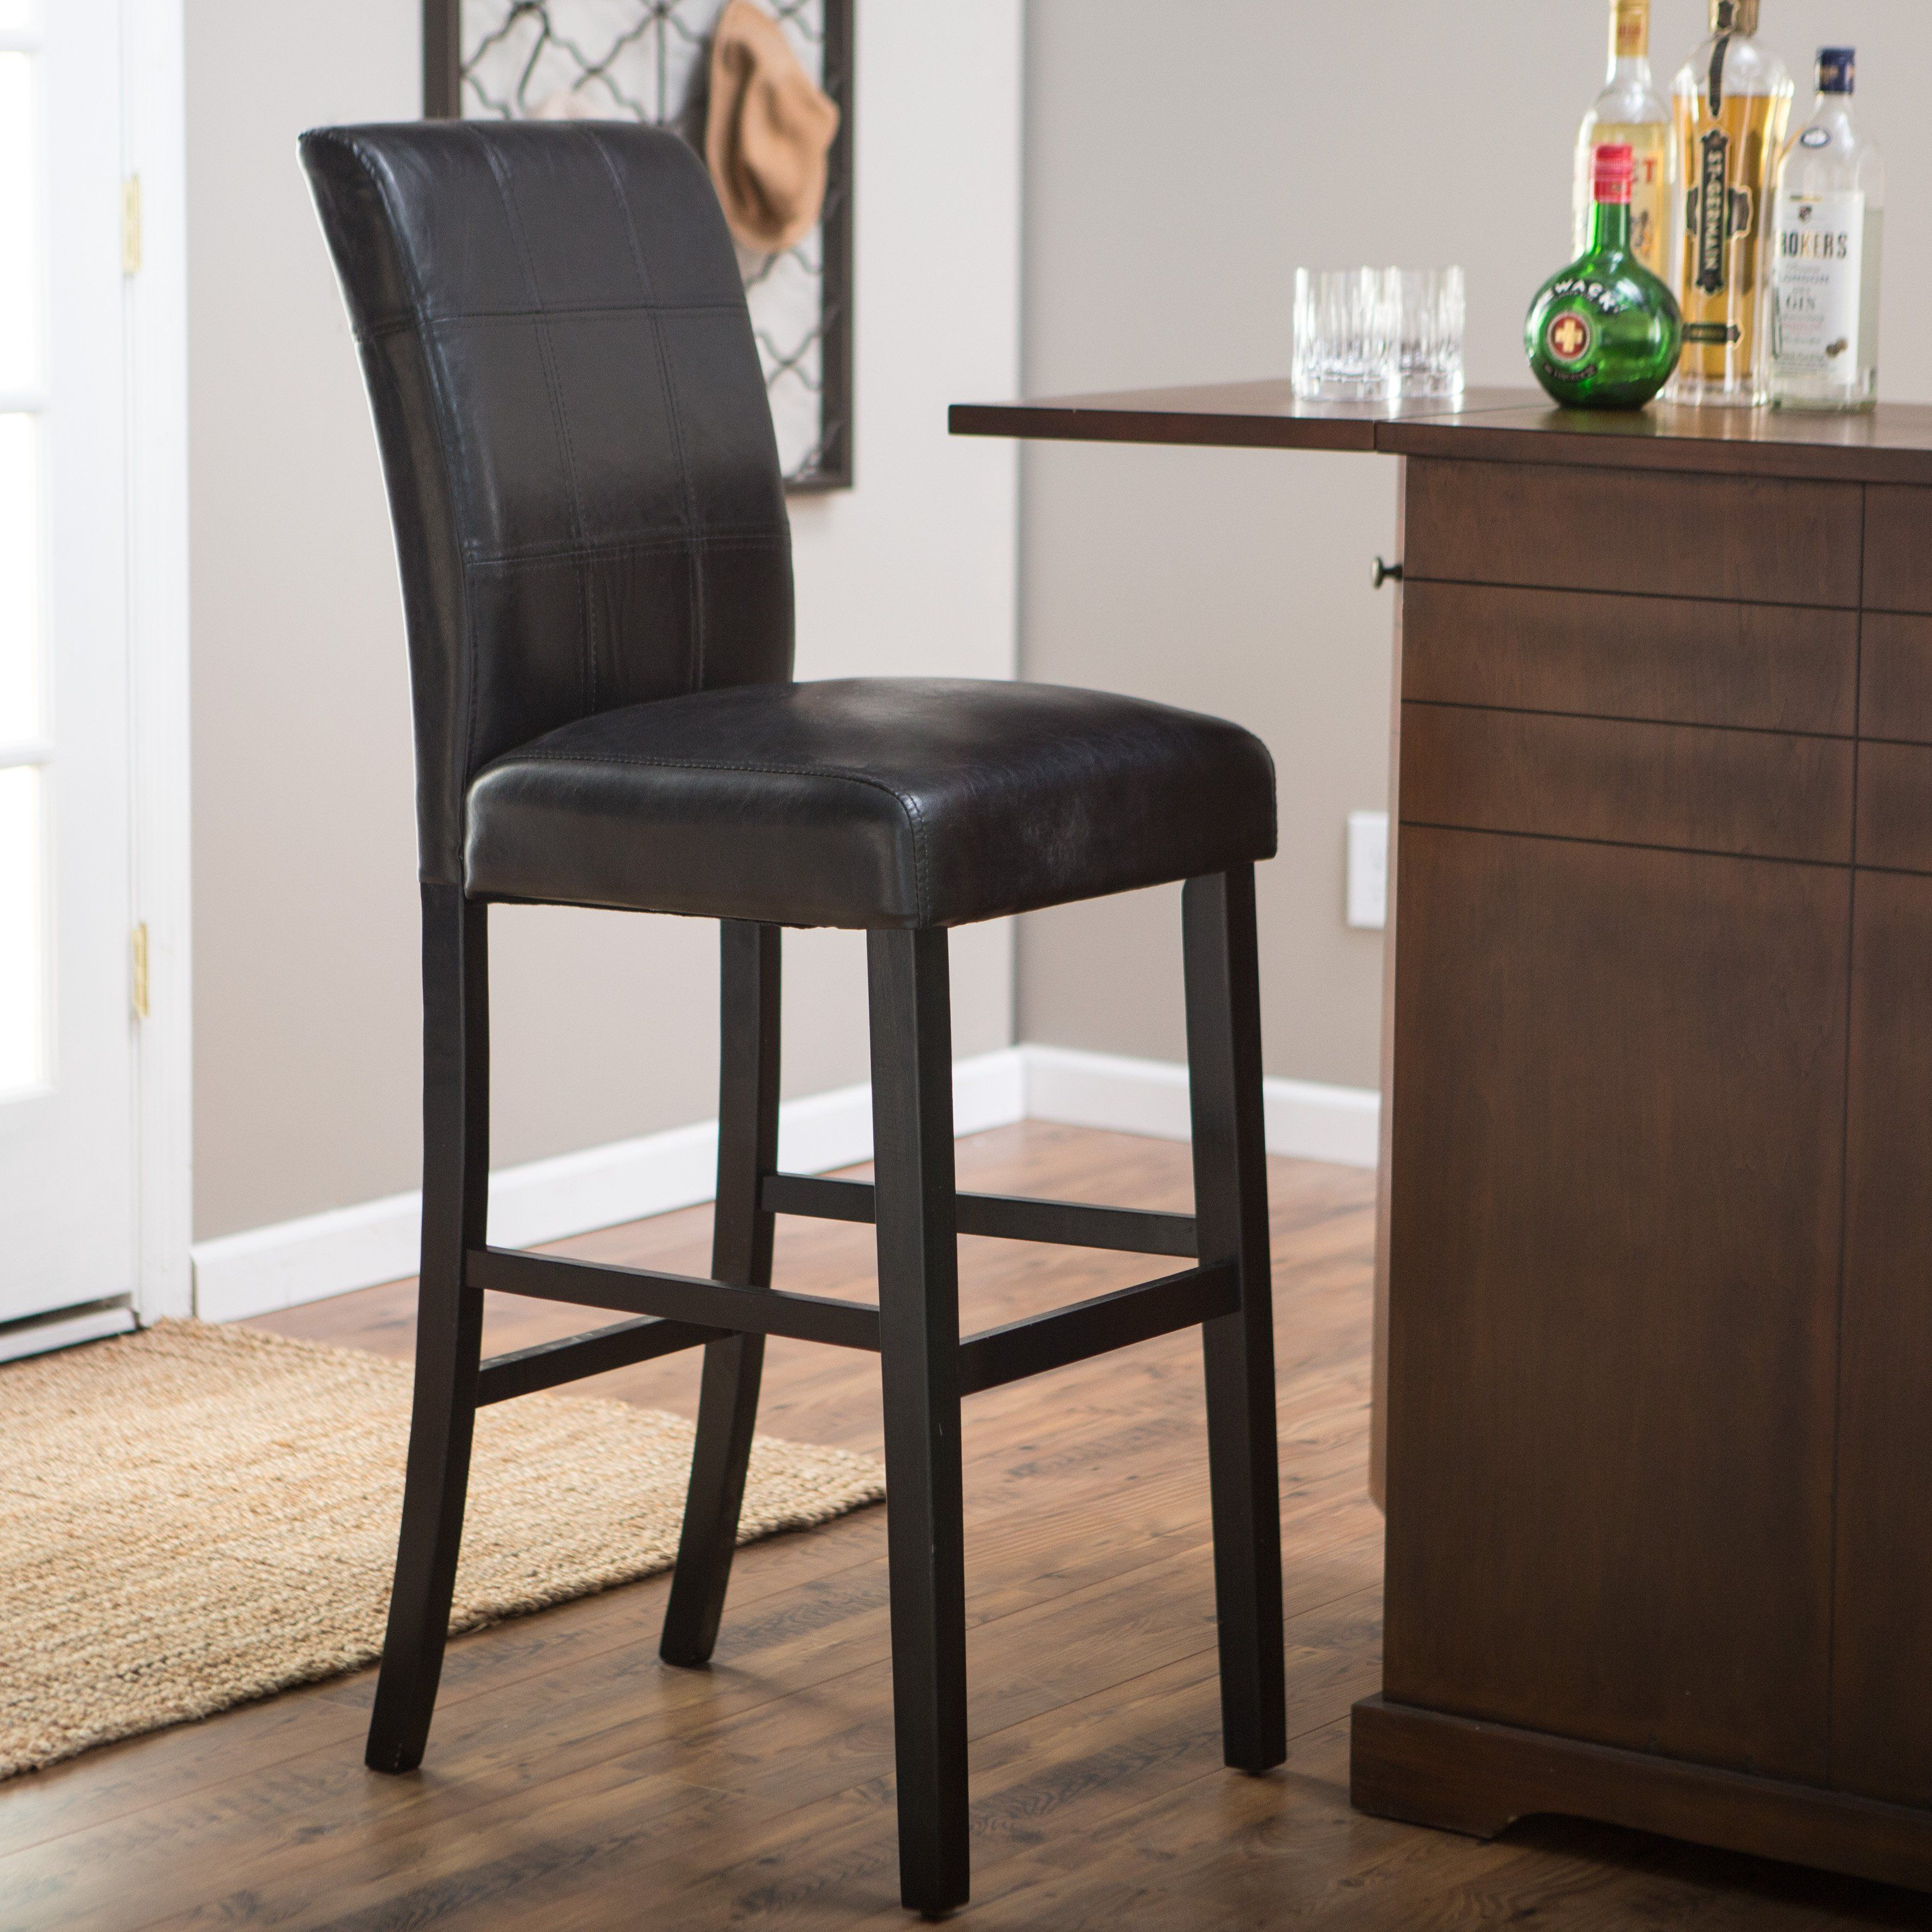 Palazzo 34 Inch Extra Tall Bar Stool Black From